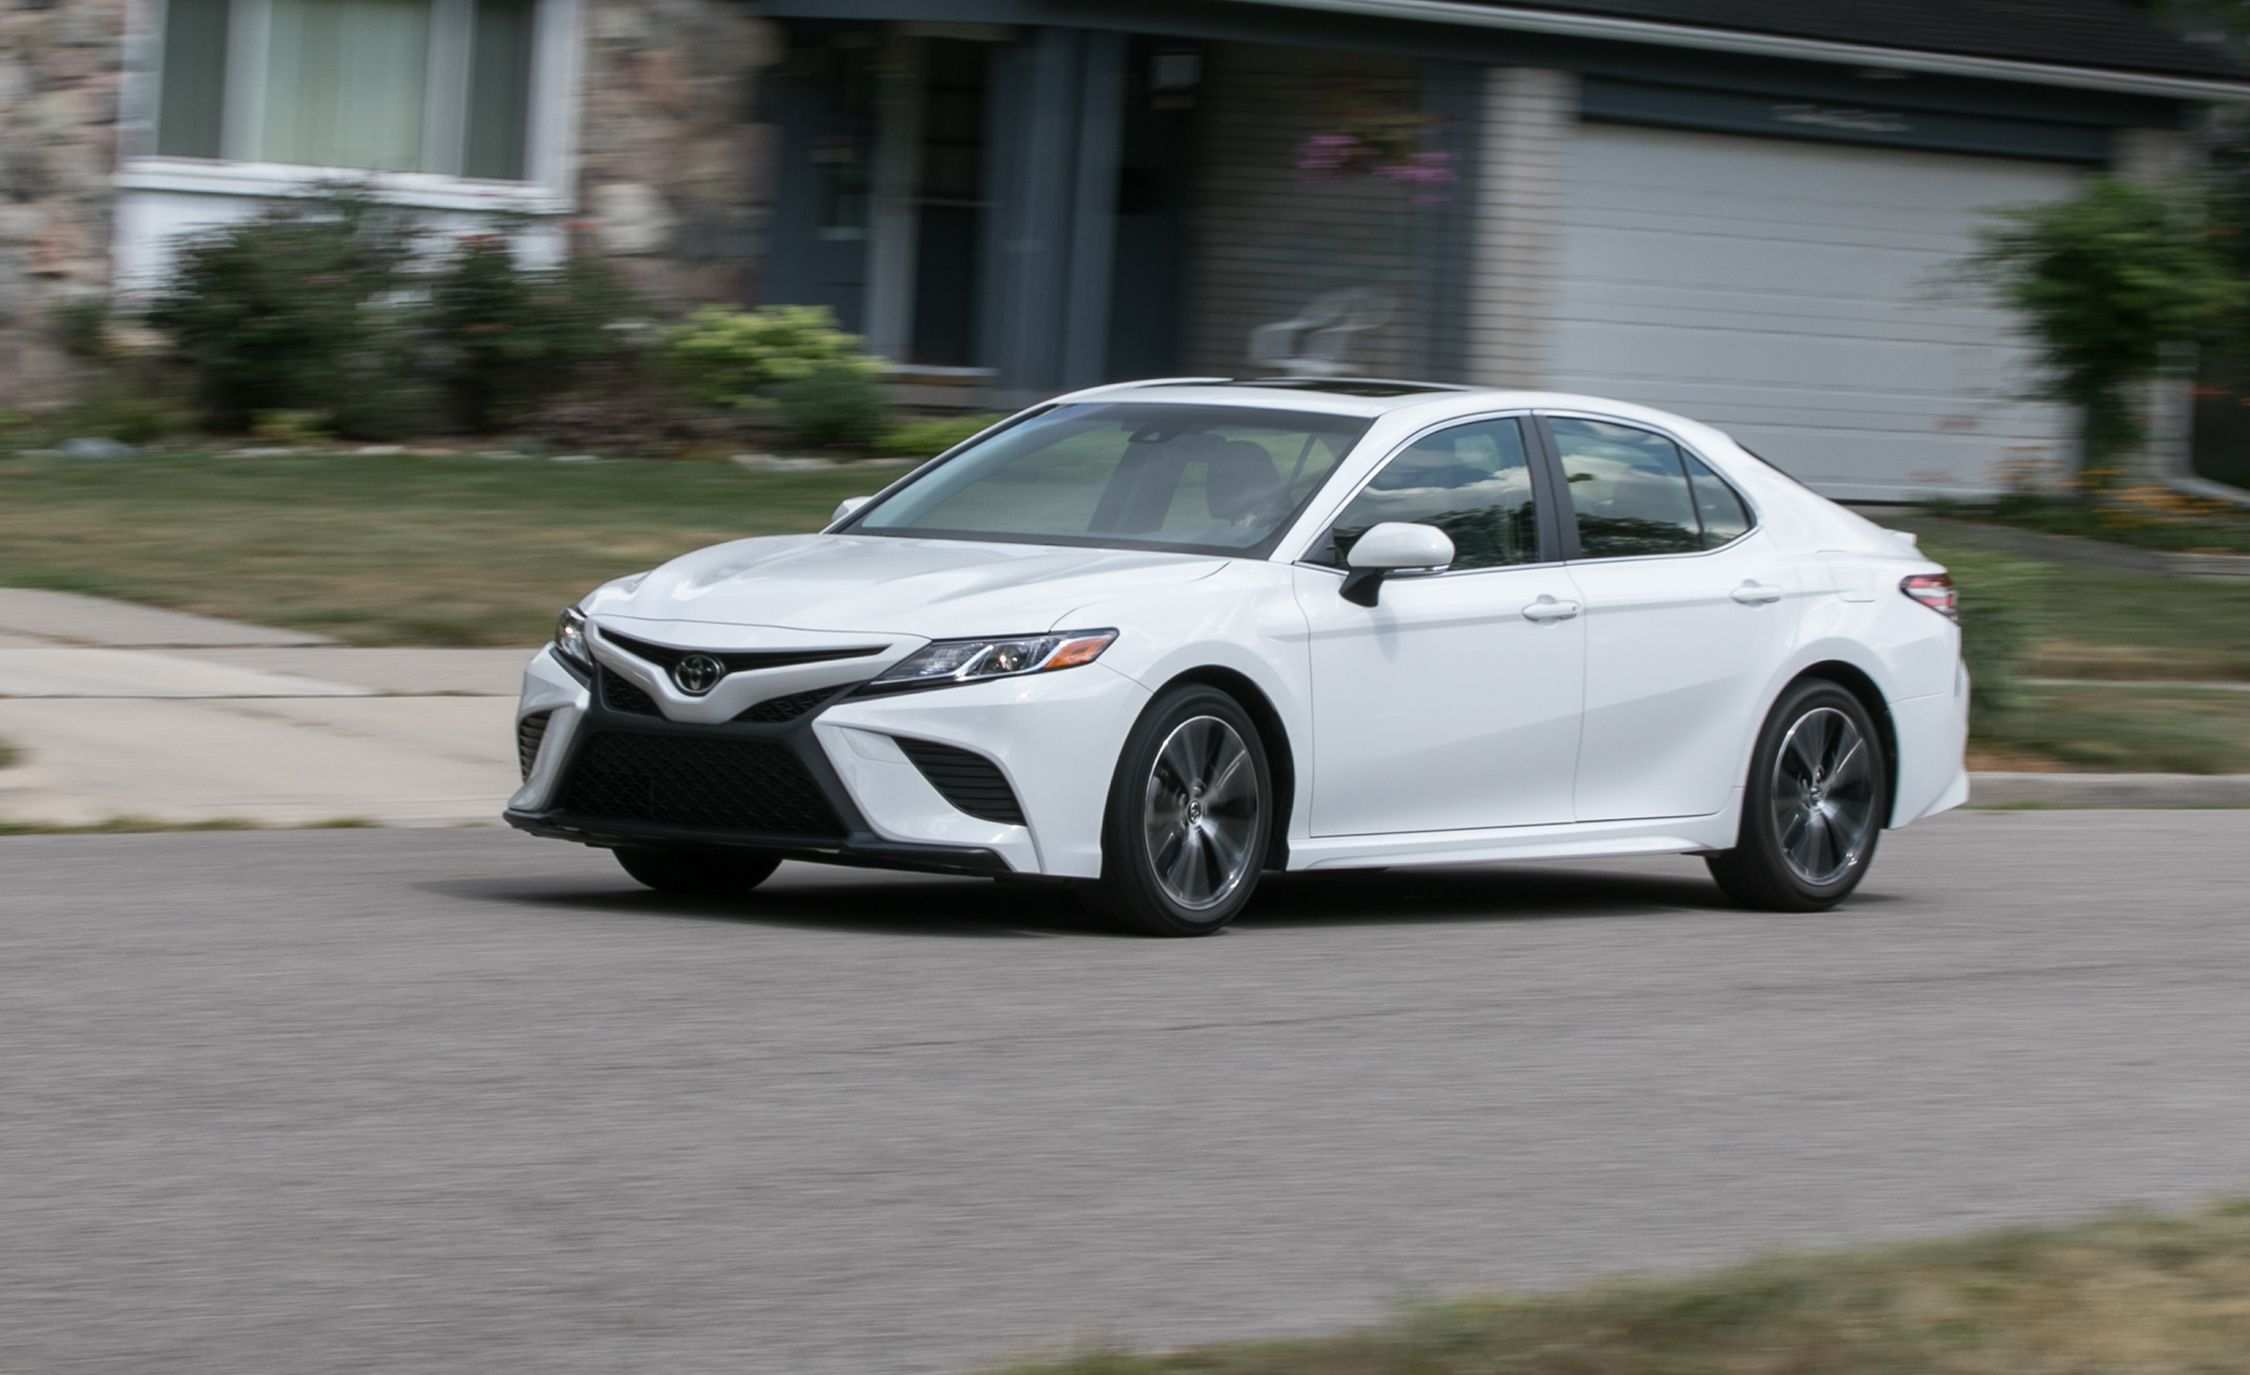 23 All New Best 2019 Toyota Camry Xle V6 Review And Price Price and Review with Best 2019 Toyota Camry Xle V6 Review And Price